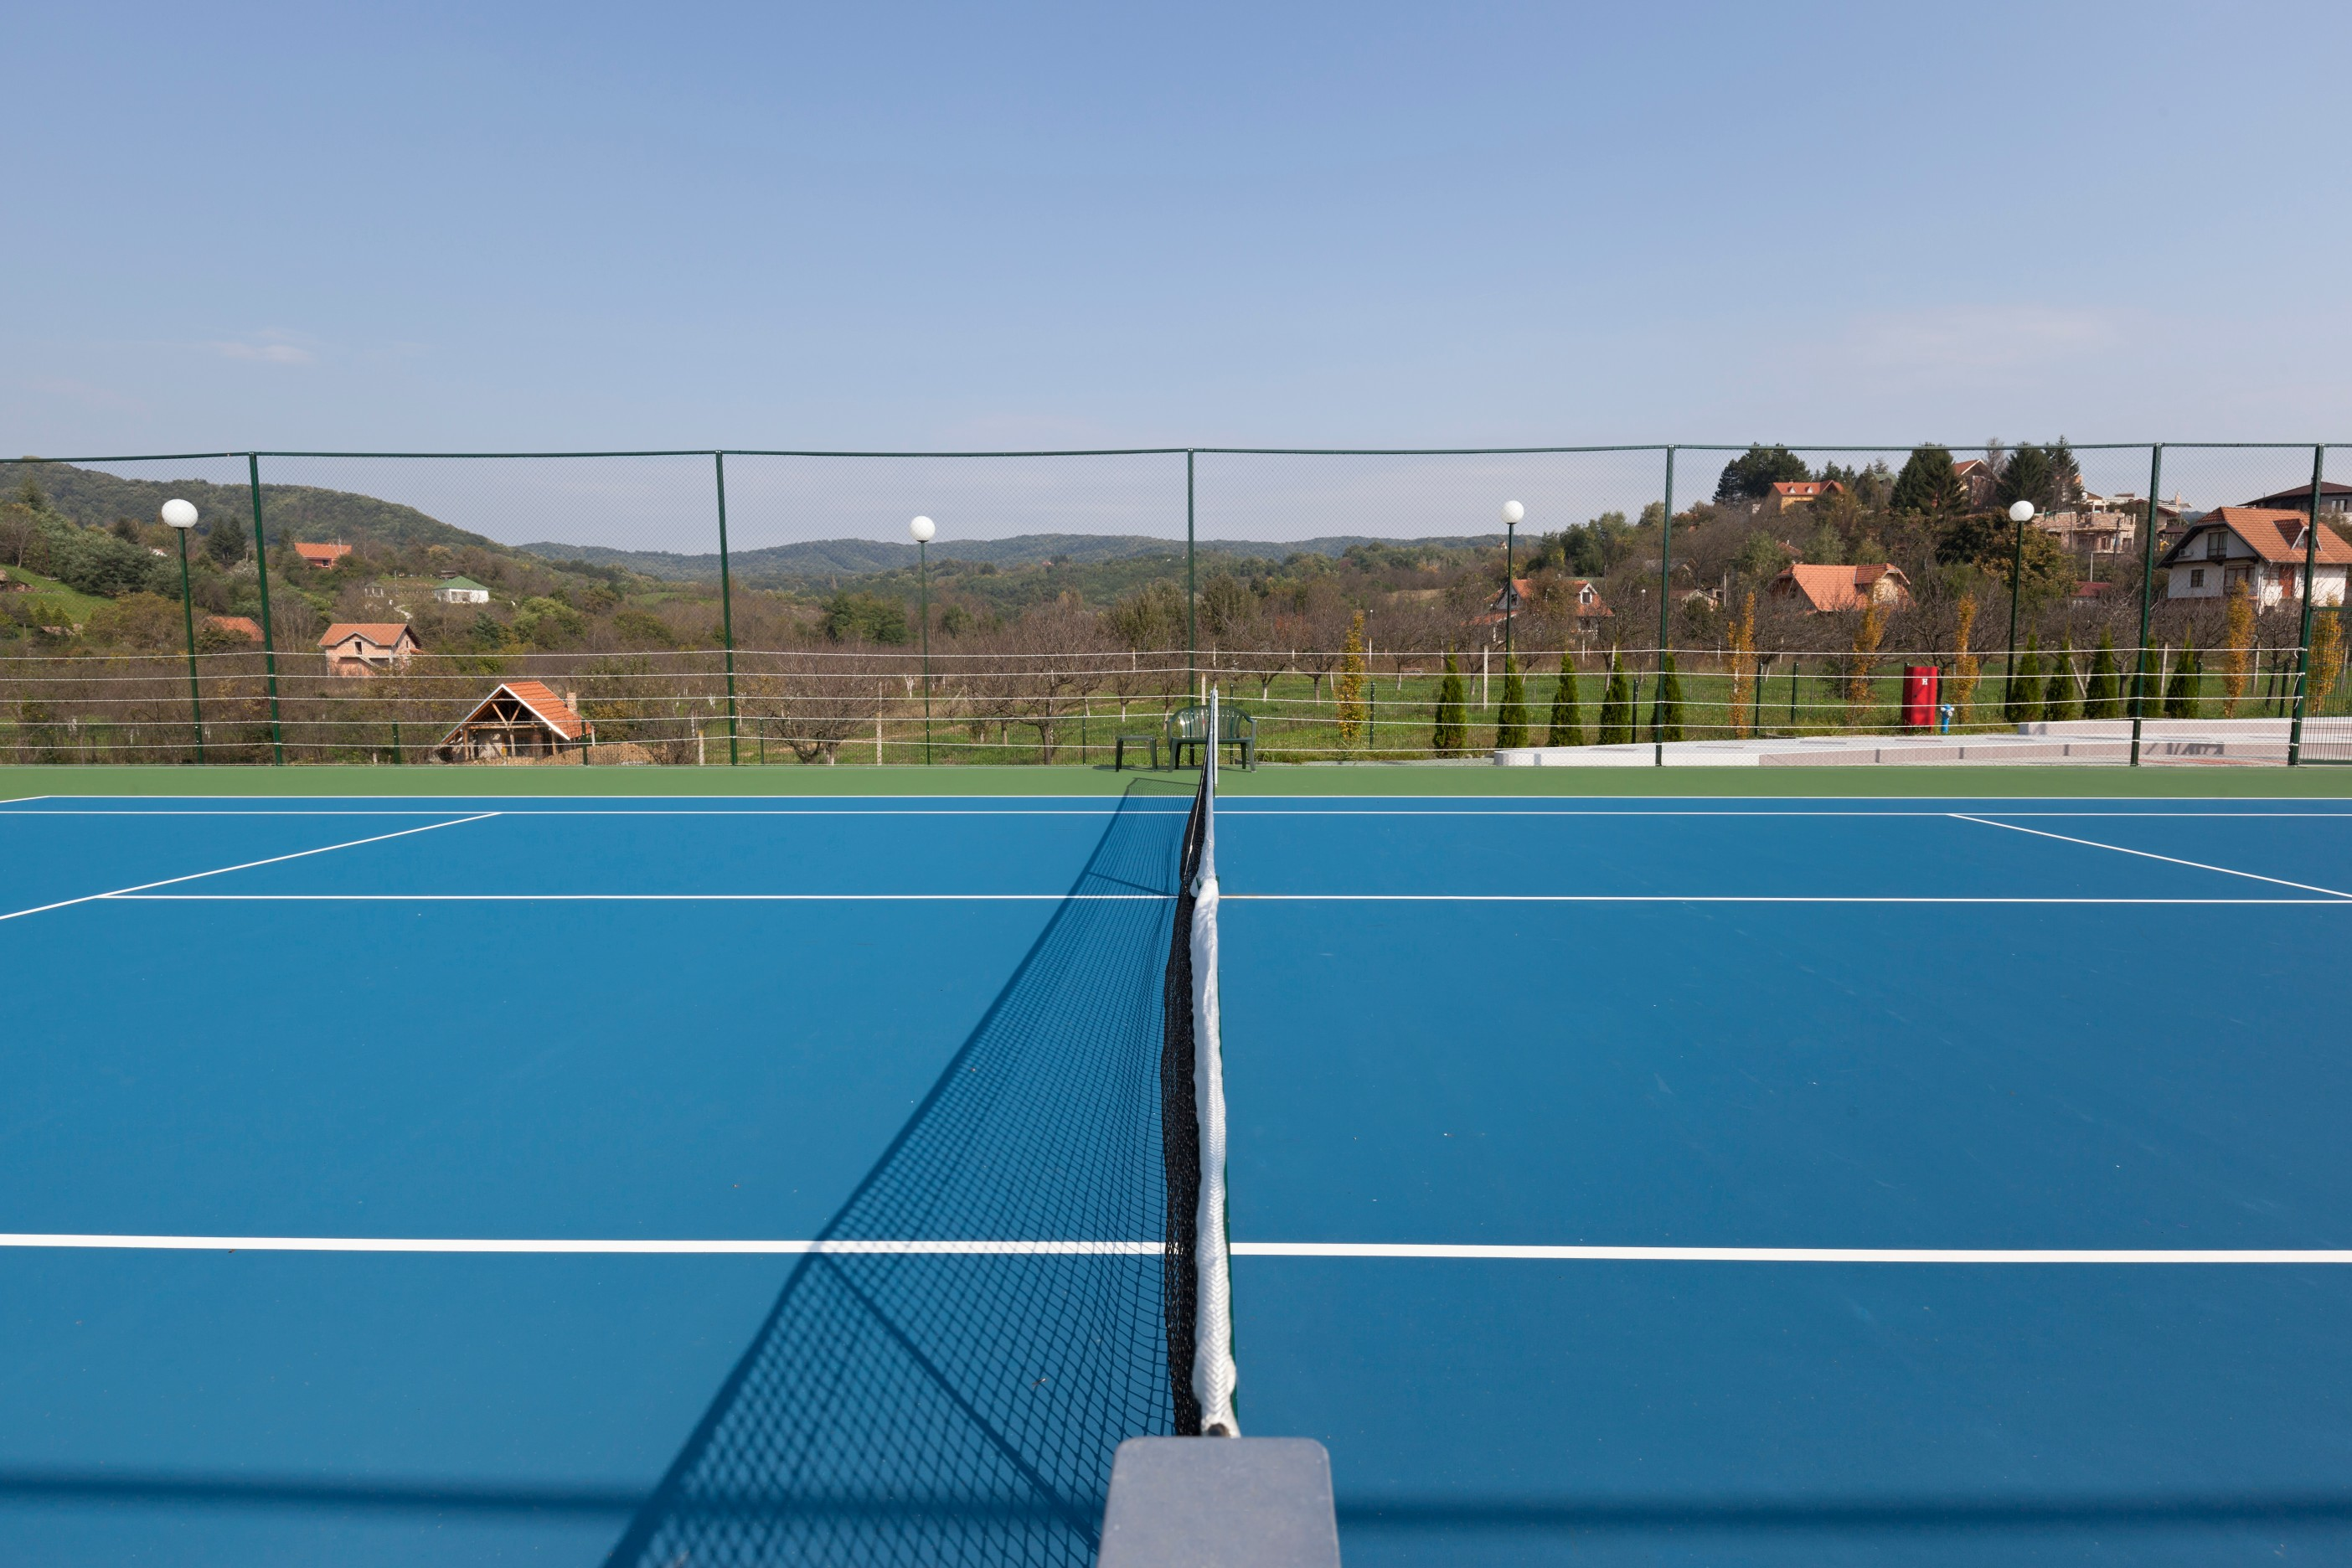 Tennis court resurfacing can be finished with a choice of colours and markings